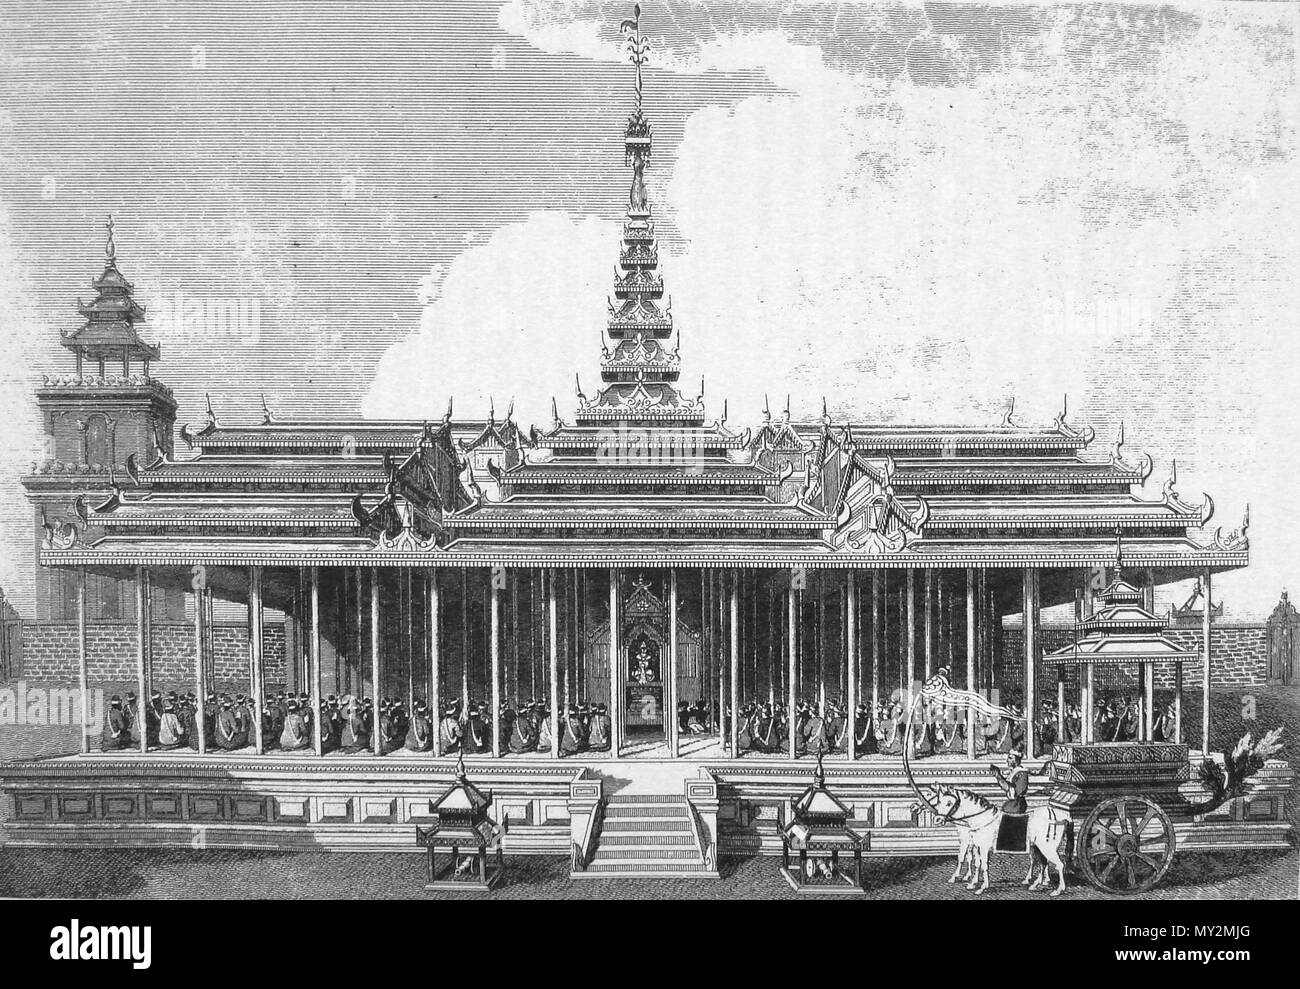 . English: View of the Imperial Court at Amarapura (Ummerapoora), and the Ceremony of Introduction.  English: Published November 1, 1799 by G. Nicol. Pall Mall & J. Wright, Piccadilly, London. . English: Drawn by Singey Bey, engraved by T. Medland. 36 Amarapura palace British Embassy Michael Symes 1795 - Stock Image